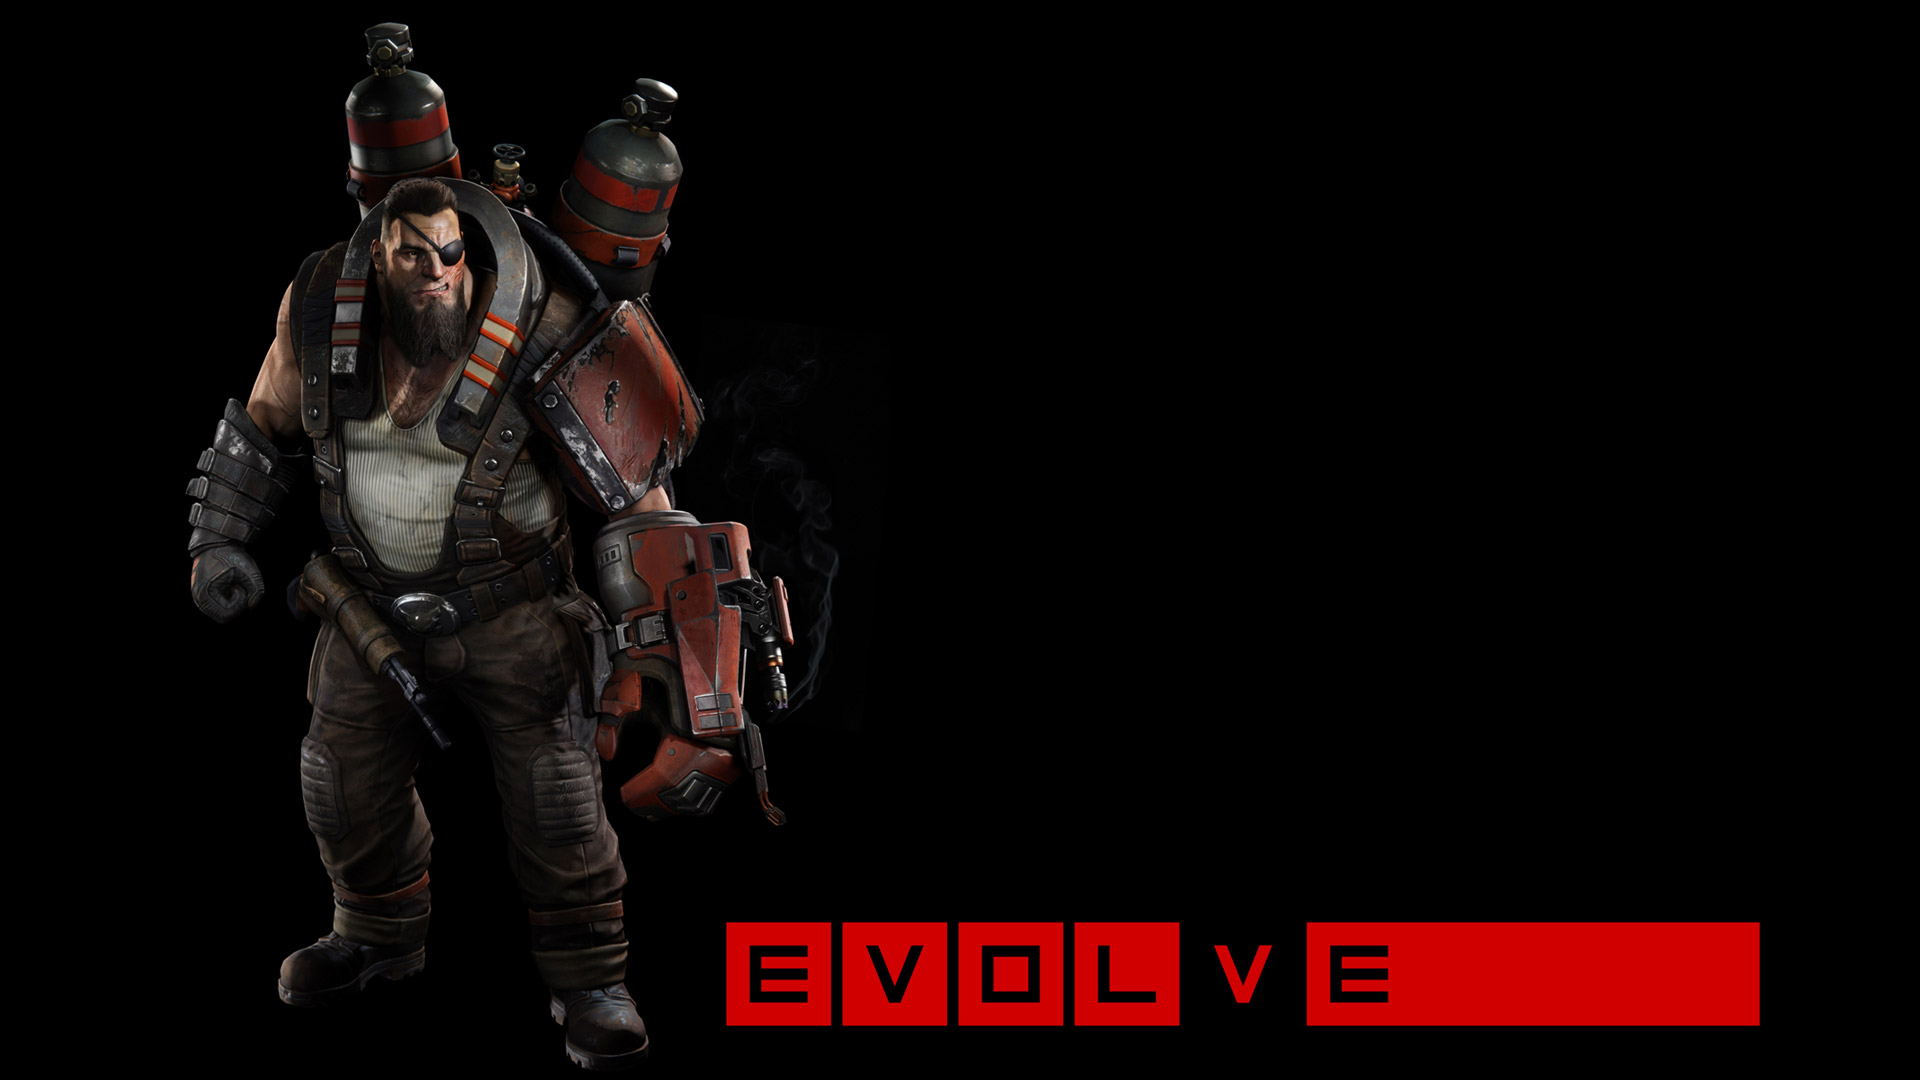 Free Evolve Wallpaper in 1920x1080